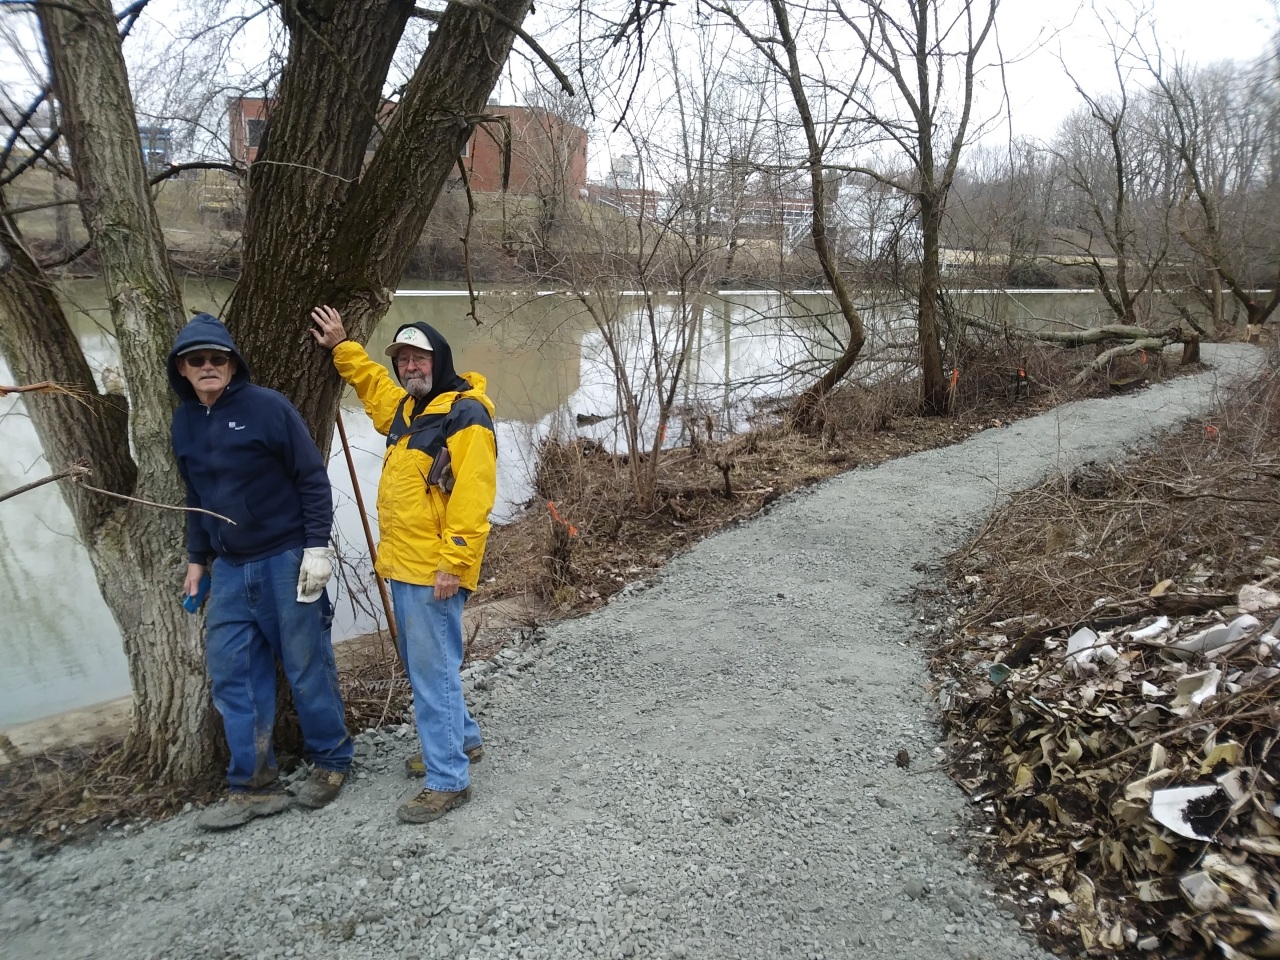 Waterworks Dam Portage Trail Completed